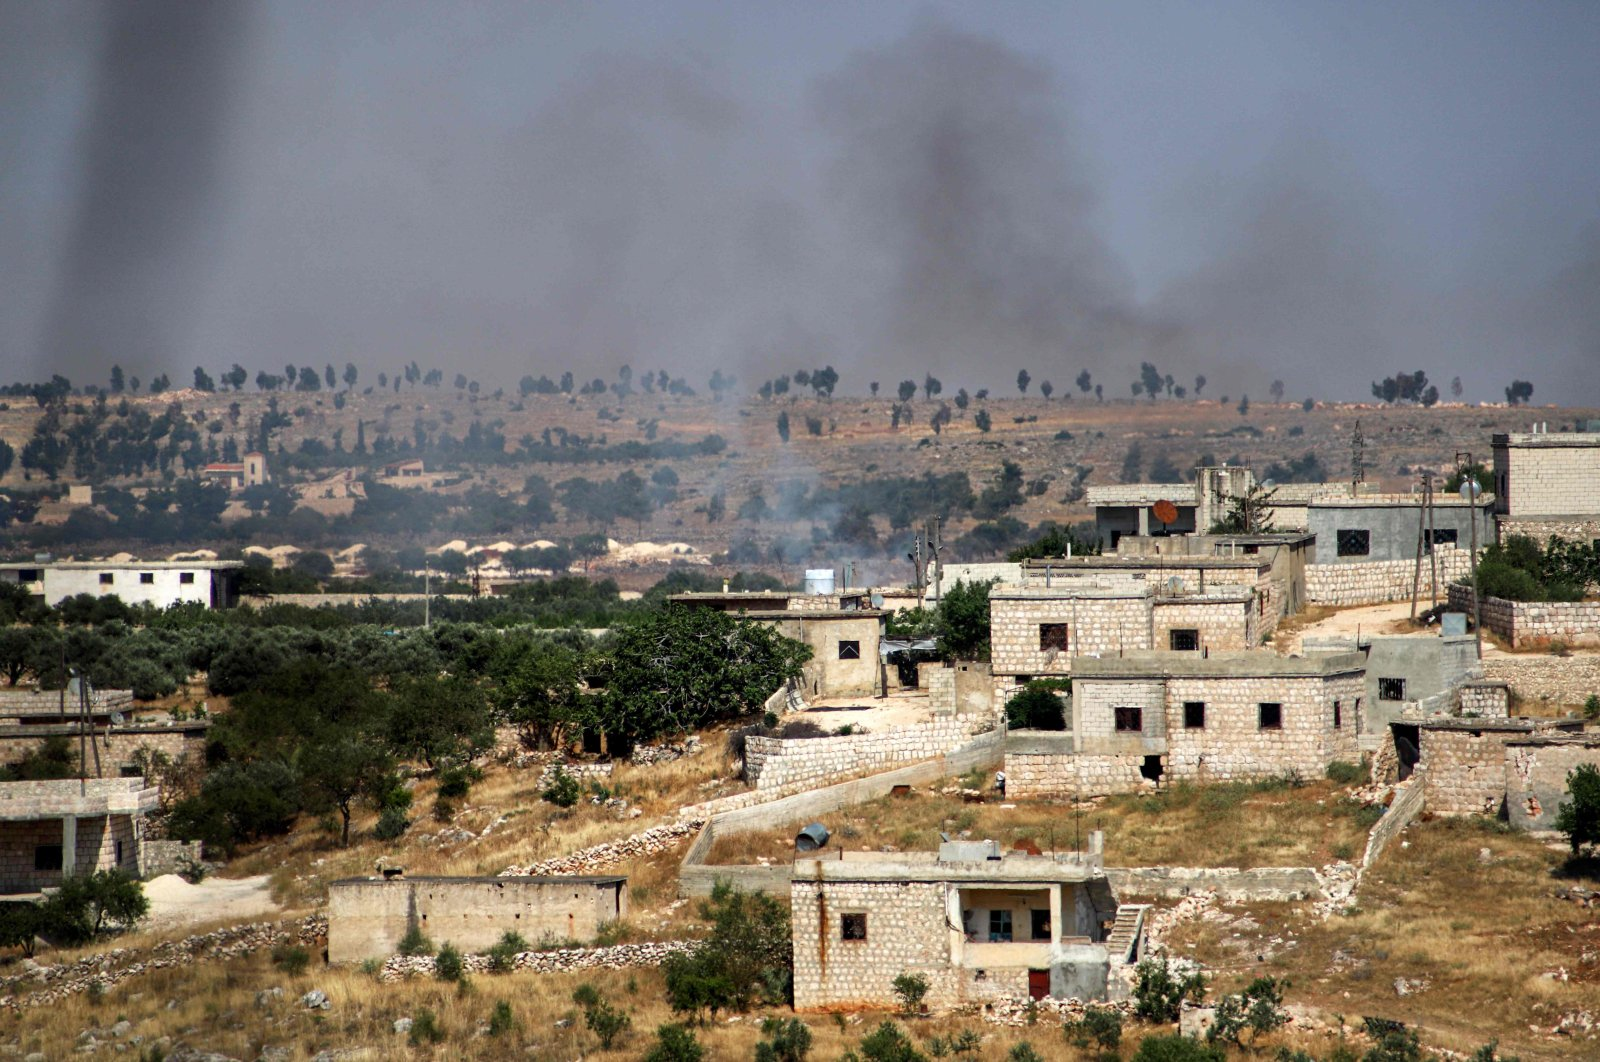 Smoke plumes rise following shelling by pro-Syrian regime forces in the town of Banin, north of Maarat al-Numan in northwestern Idlib province, Syria, June 4, 2020. (AFP Photo)